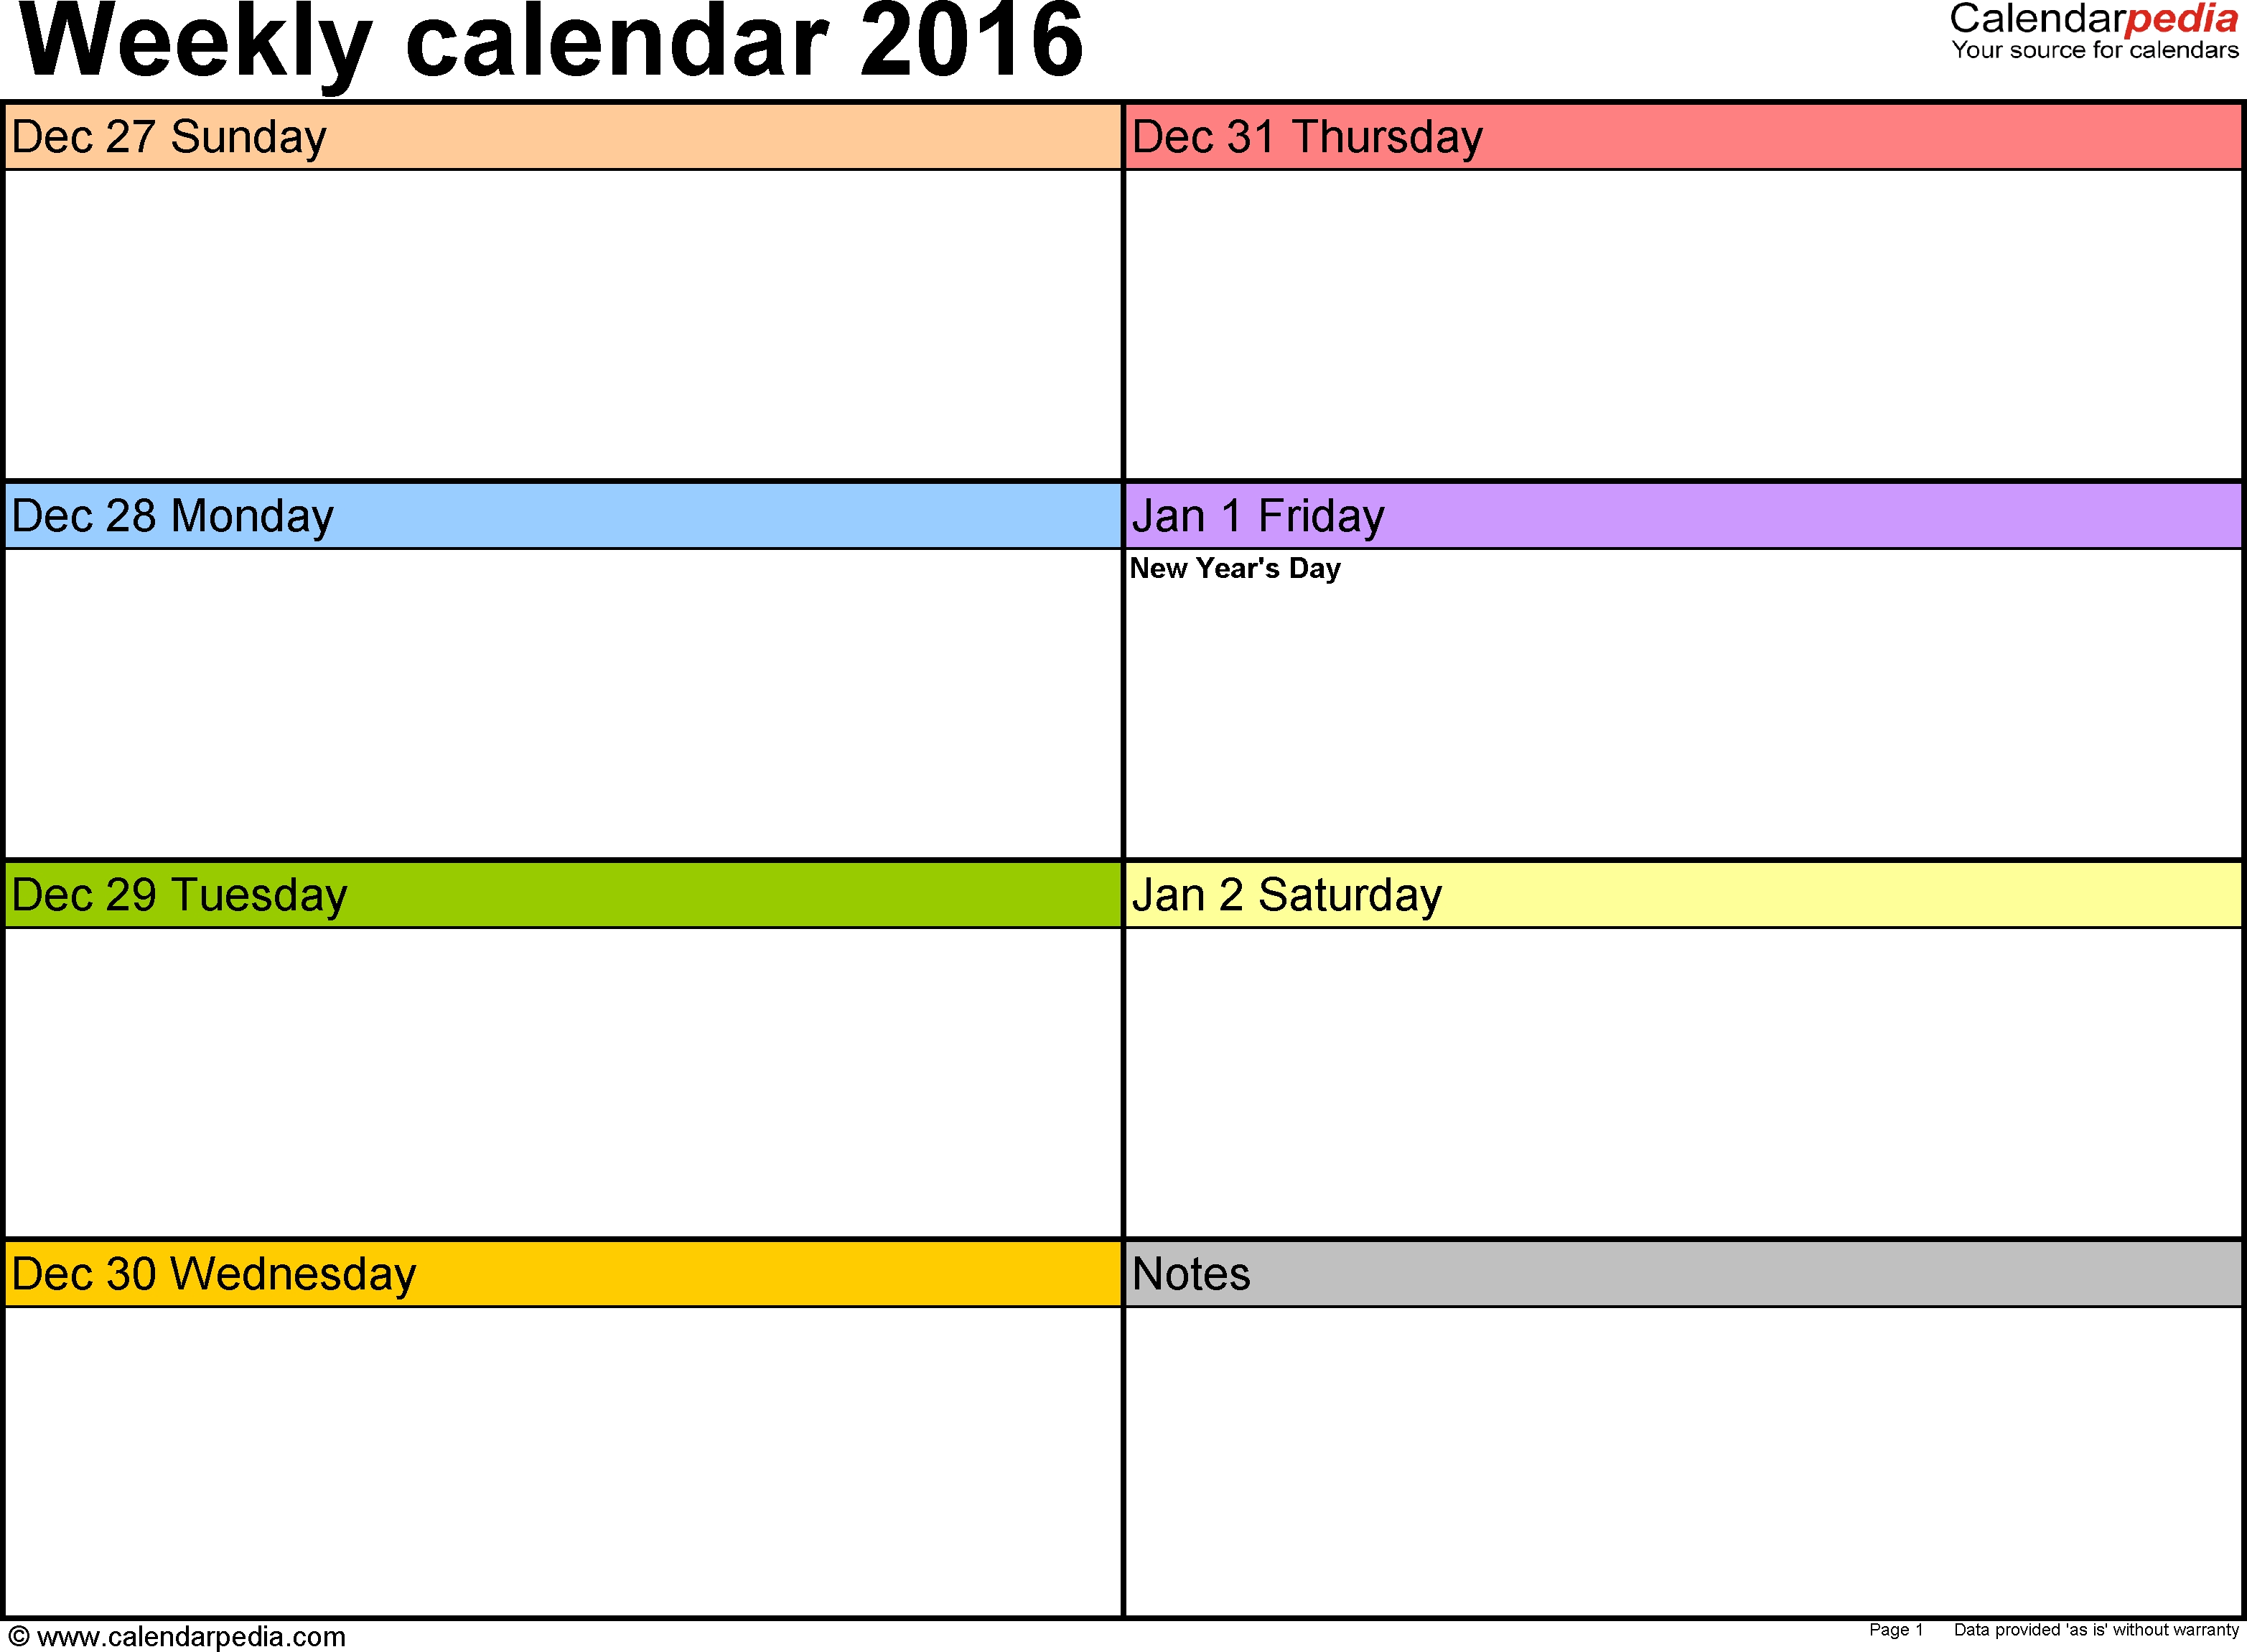 Weekly Calendar 2016: Template For Word Version 2, Landscape-One Week Monday Through Friday Calendar Template